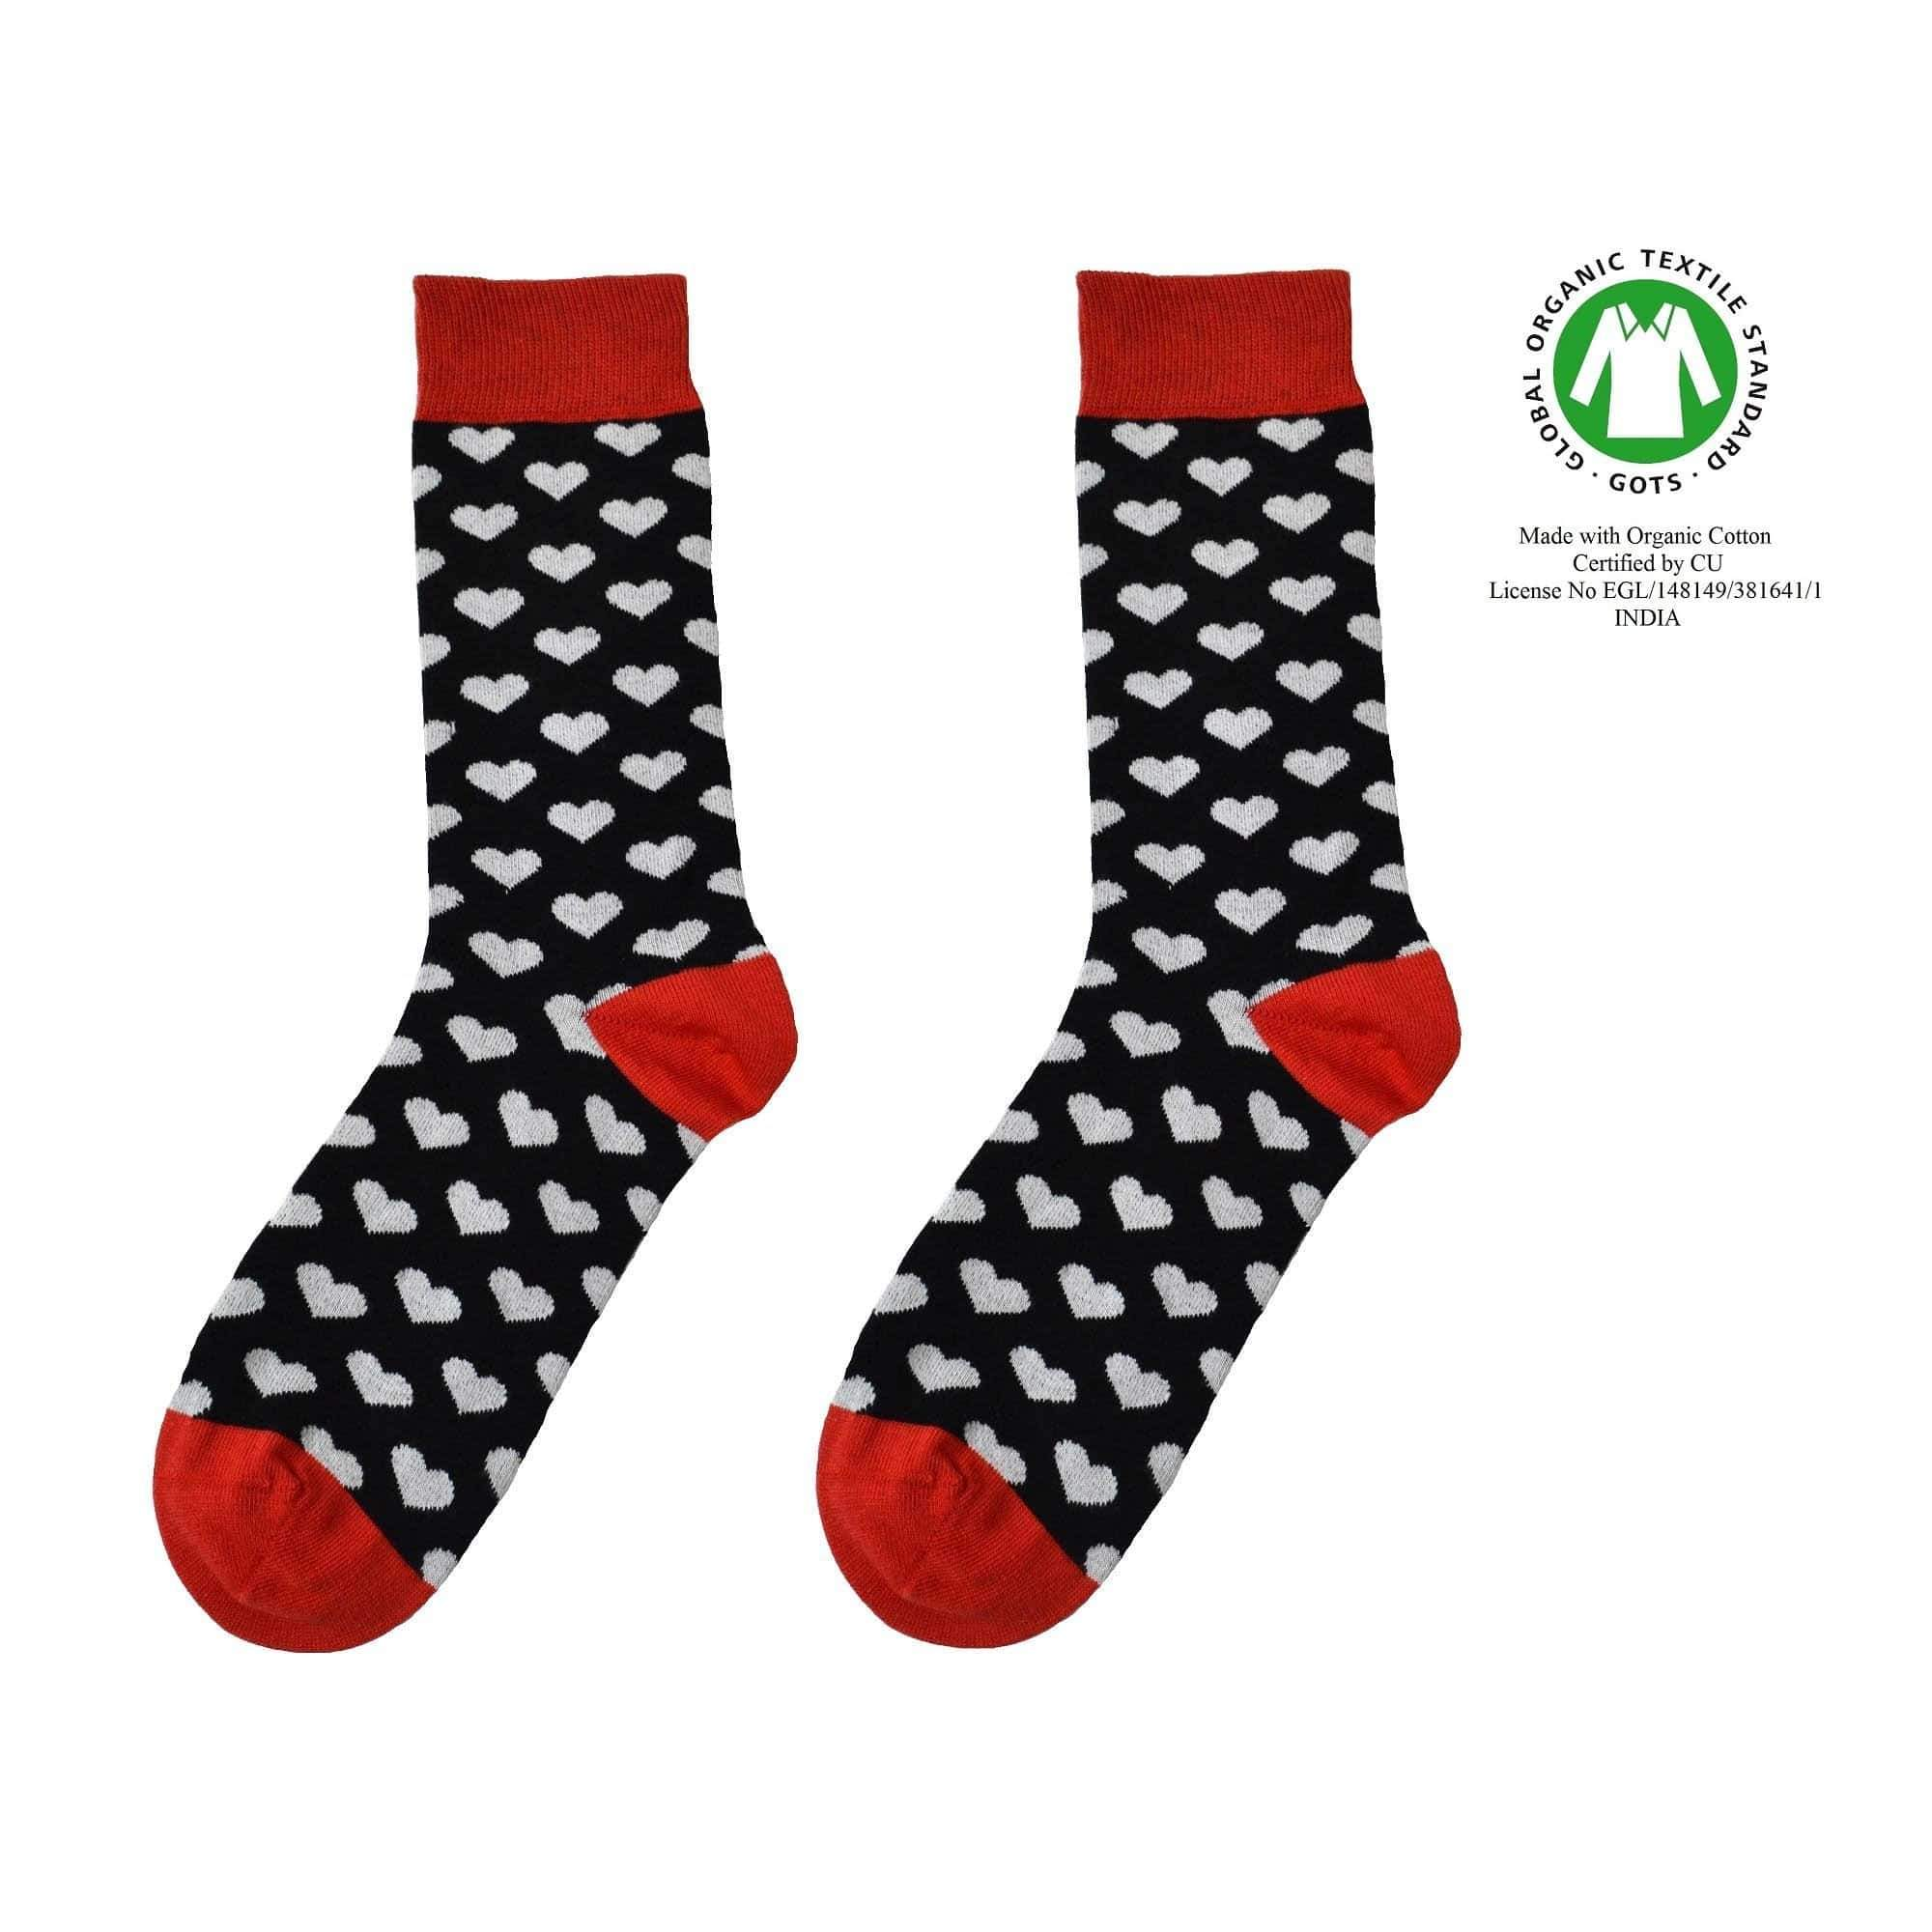 Organic Socks of Sweden sock Lindgren Socks. Organic Cotton. sustainable fashion ethical fashion